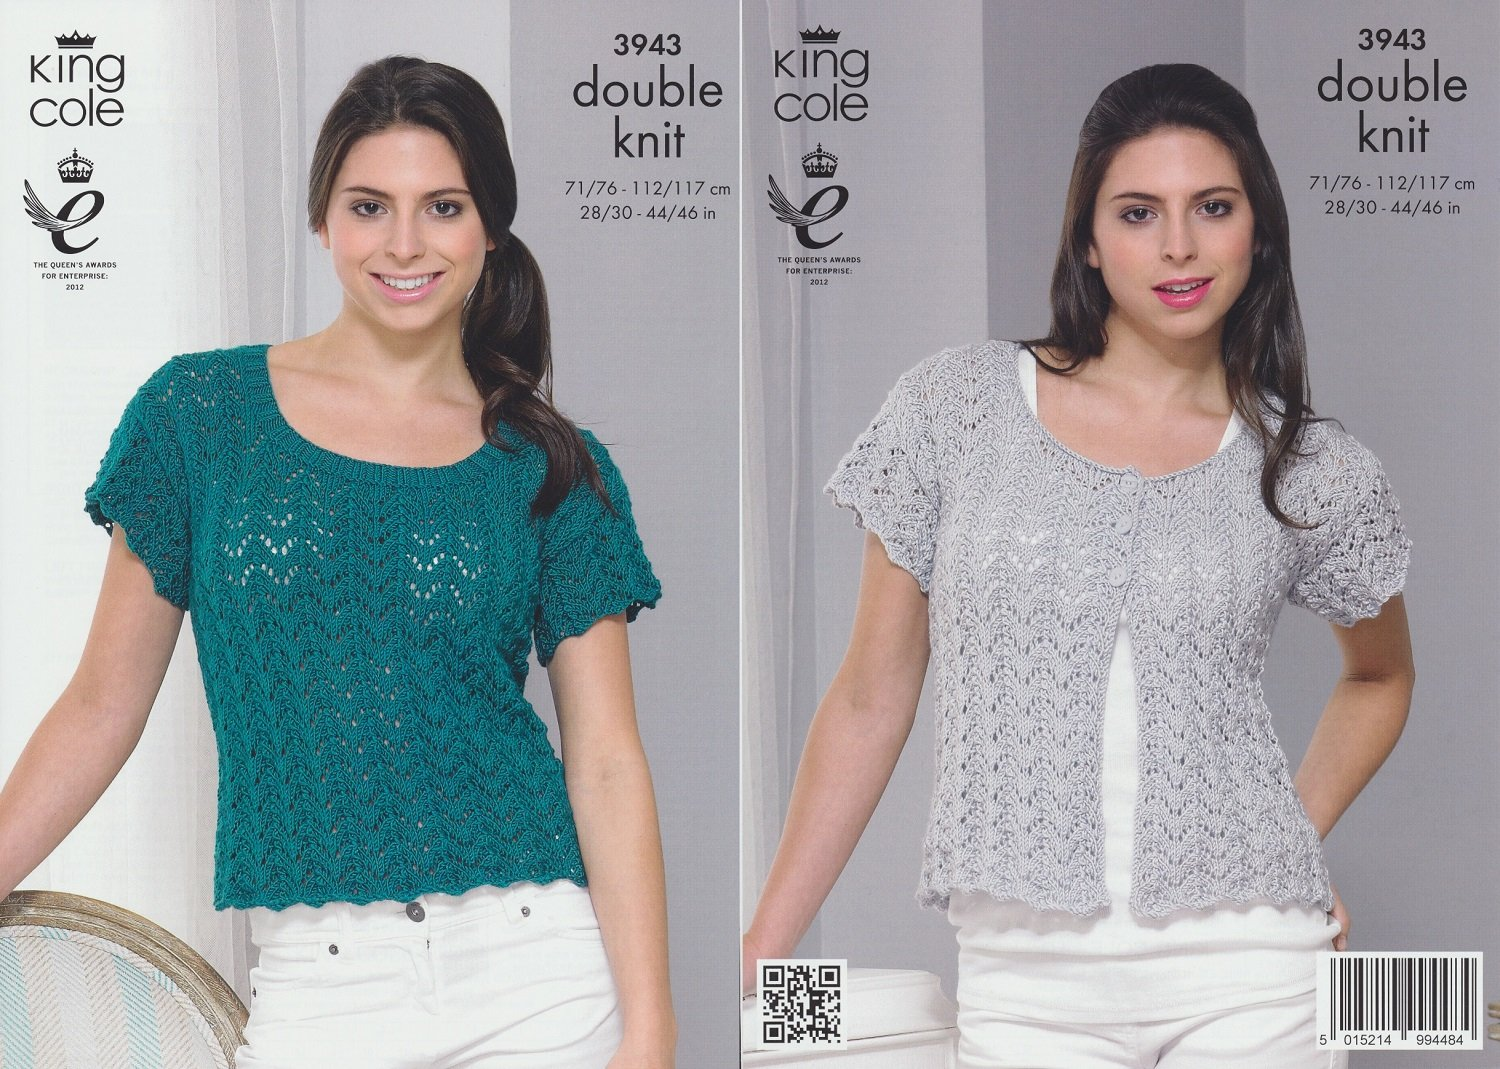 Knitting Jumper Pattern : King cole ladies double knitting pattern womens smooth dk short